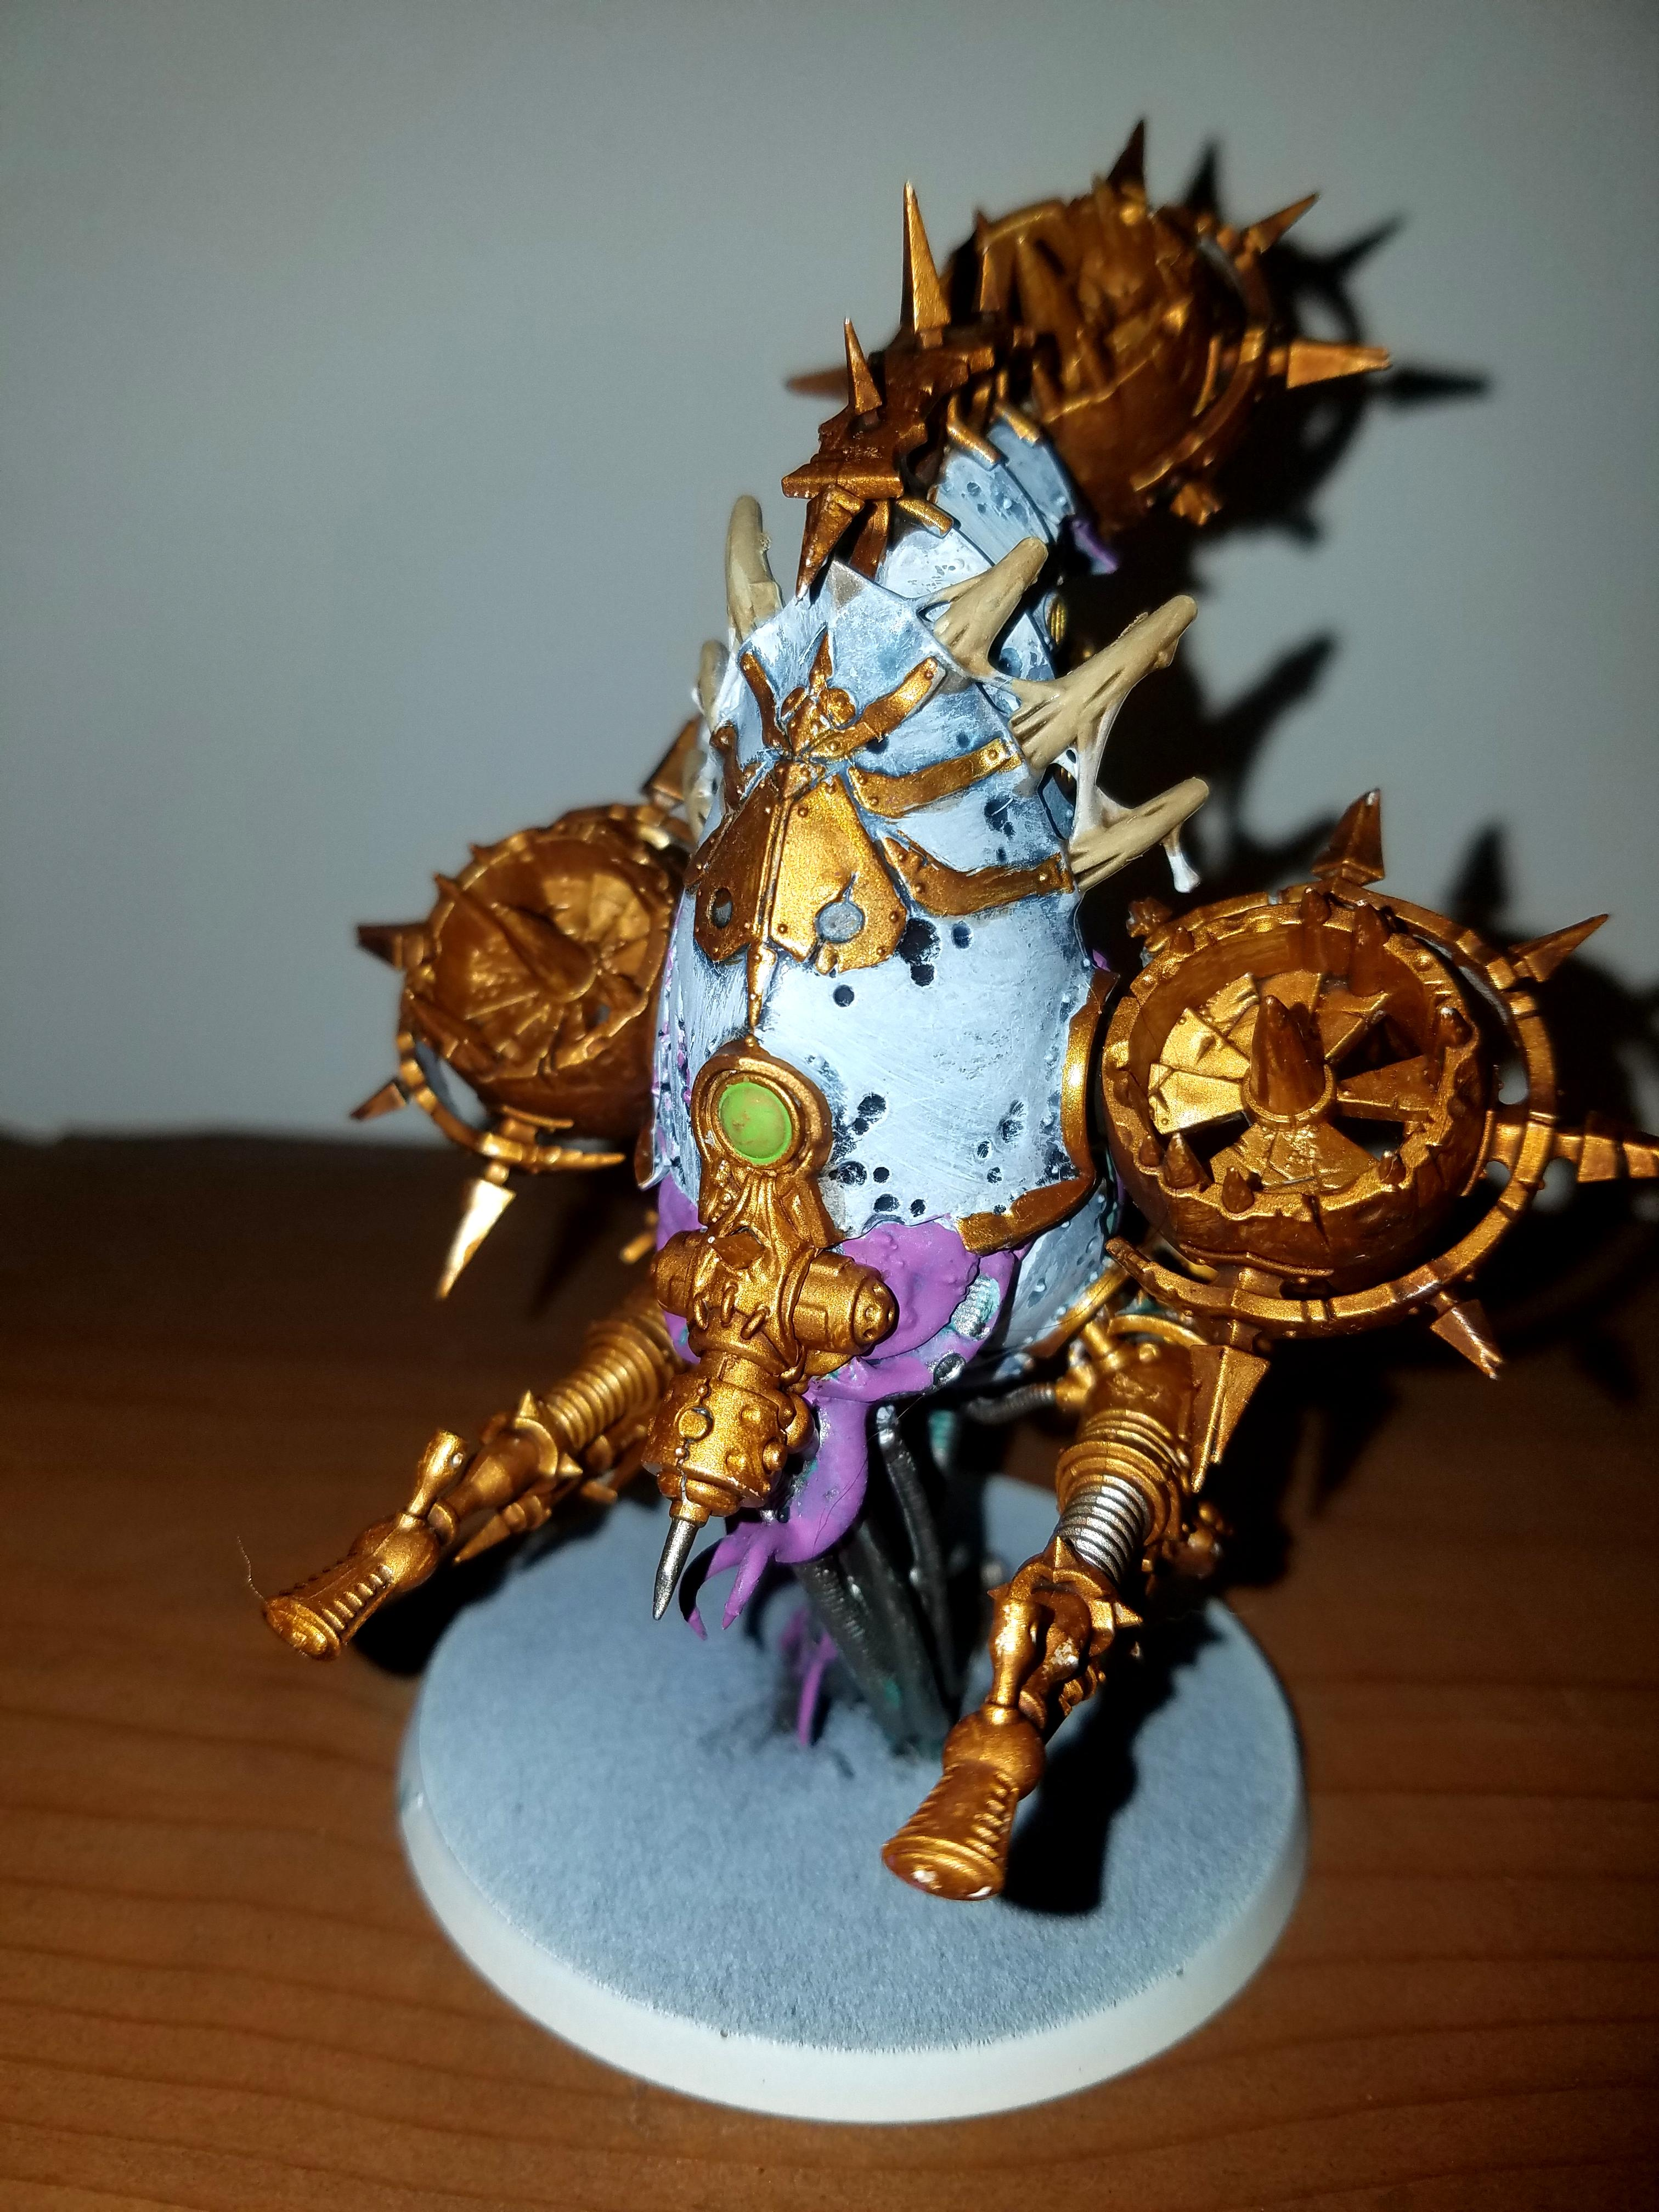 Bloat Drone, Death Guard, Thousand Sons